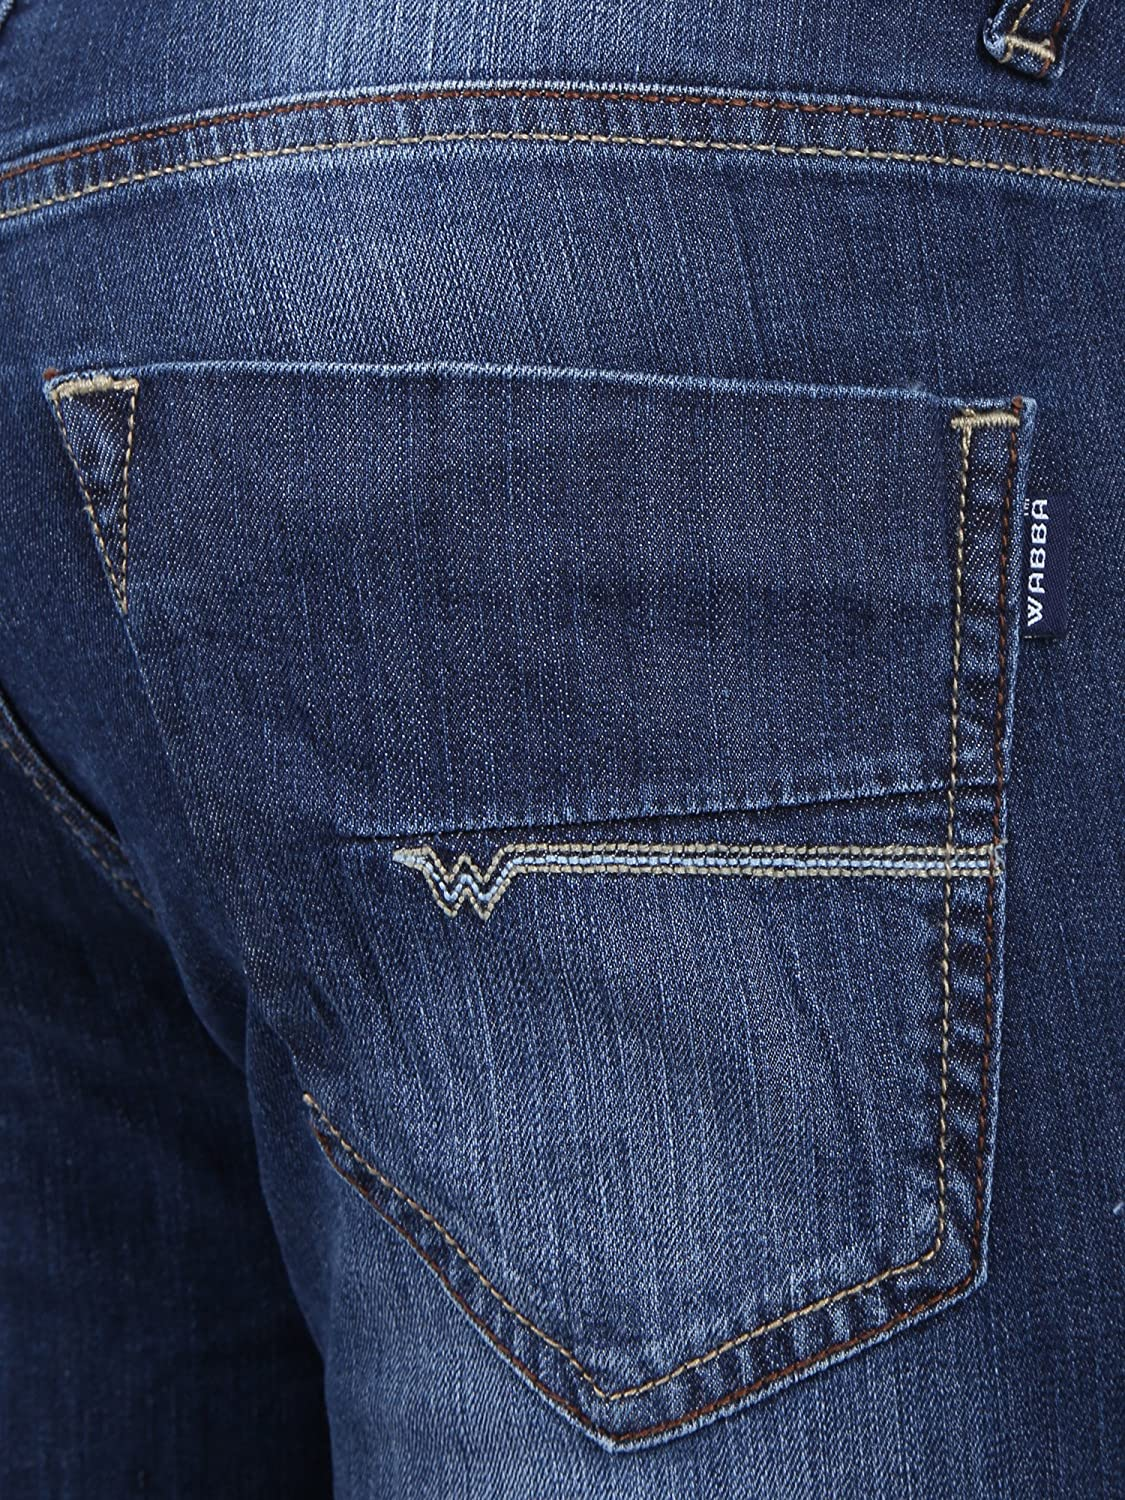 Wabba Mens Stretch Slim Fit Jeans Light Weight Jeans.